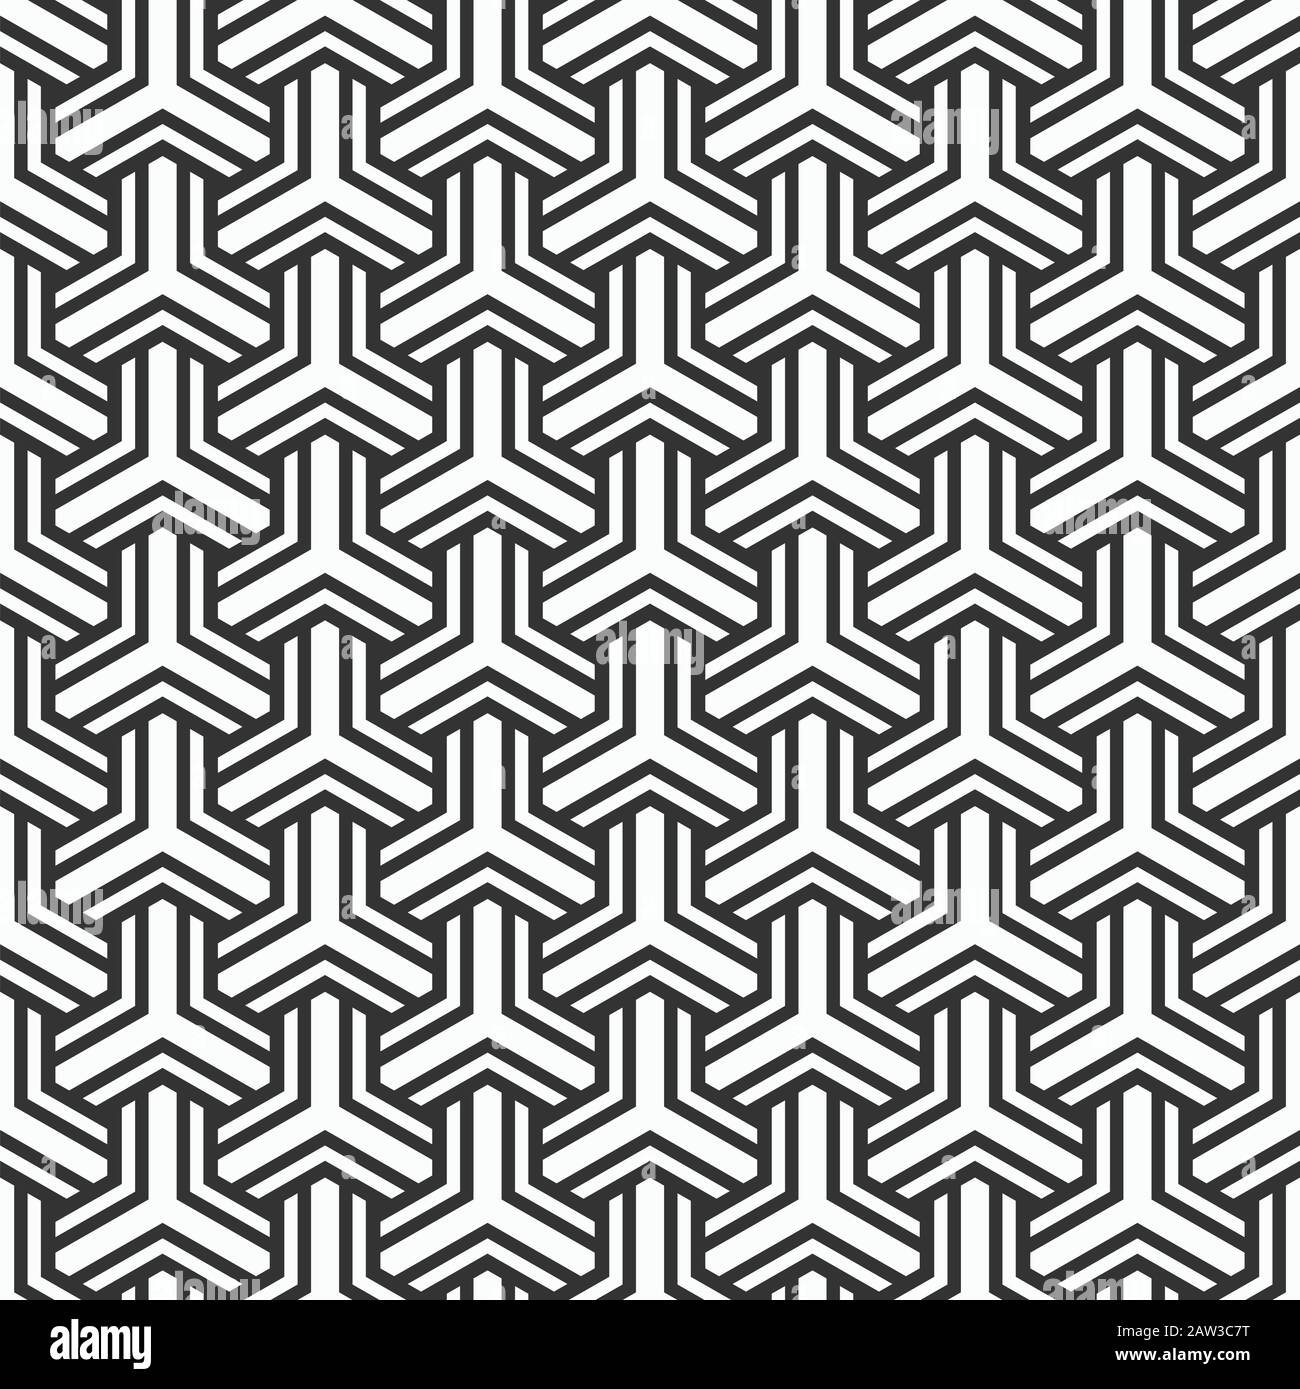 Abstract seamless pattern. Modern stylish texture. Striped bold geometric tiles with triple weaving elements. Vector monochrome background. Stock Vector